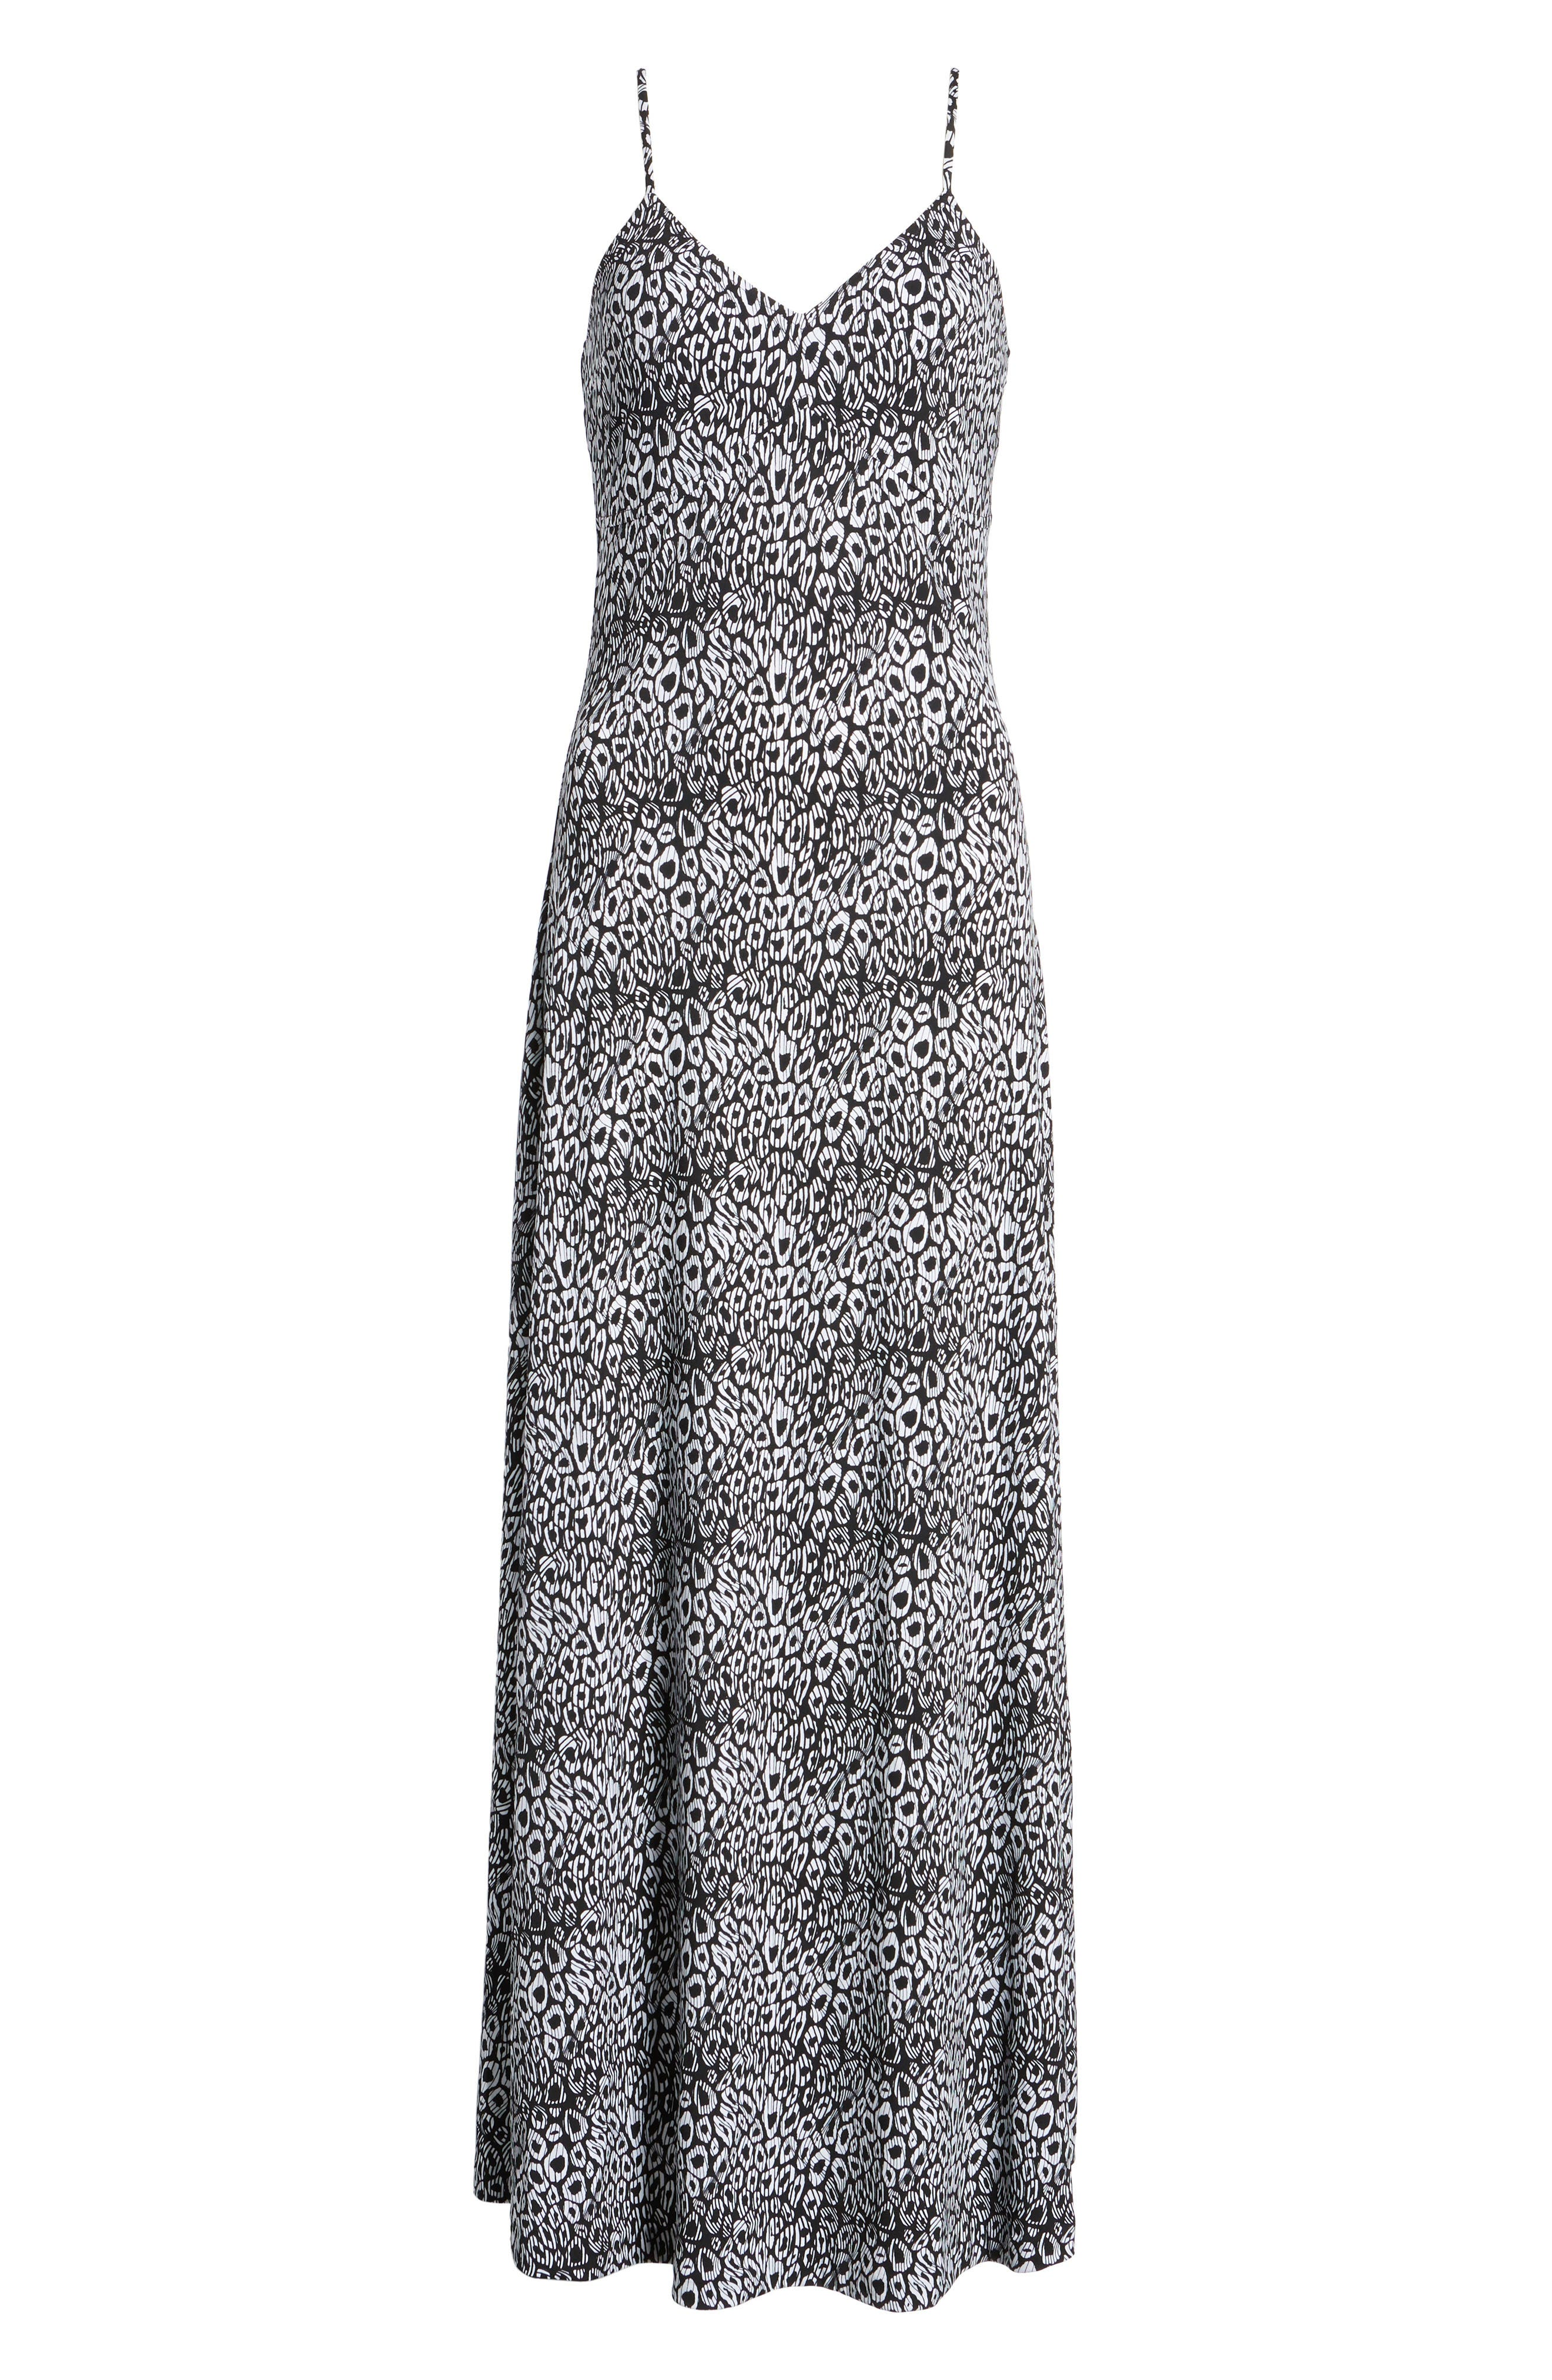 Wavy Leopard Print Tank Maxi Dress,                             Alternate thumbnail 7, color,                             001